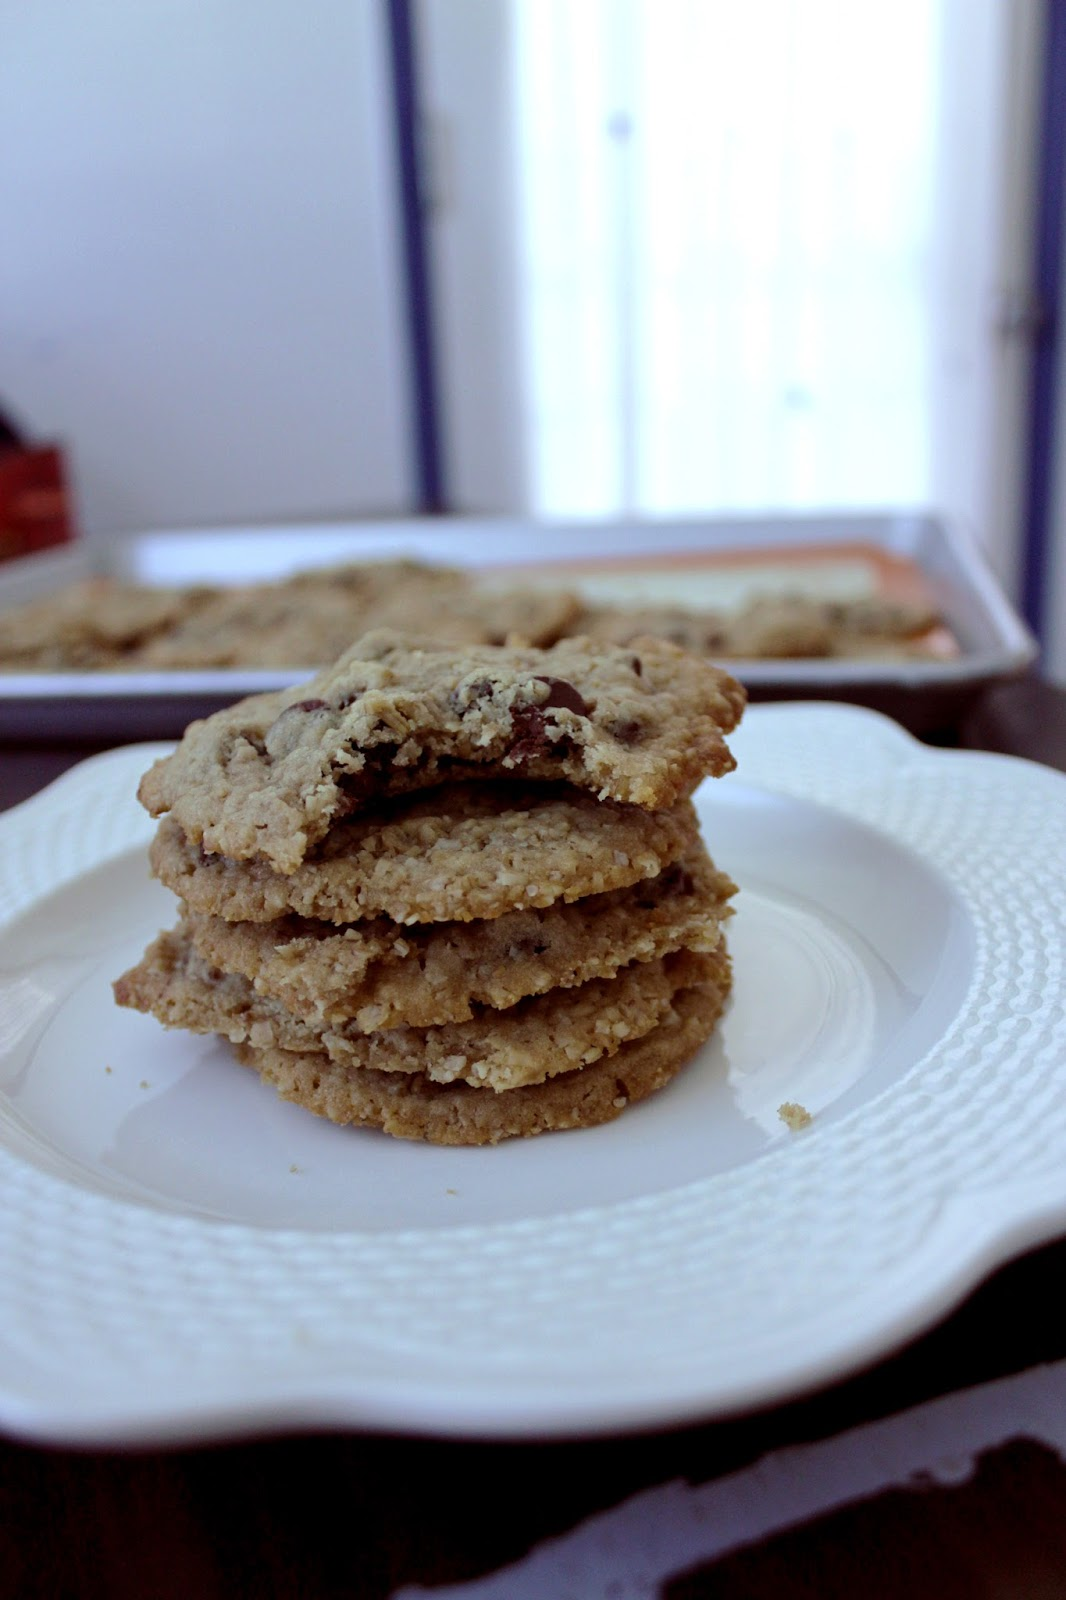 Egg-Less Oatmeal Chocolate Chip Cookies by freshfromthe.com